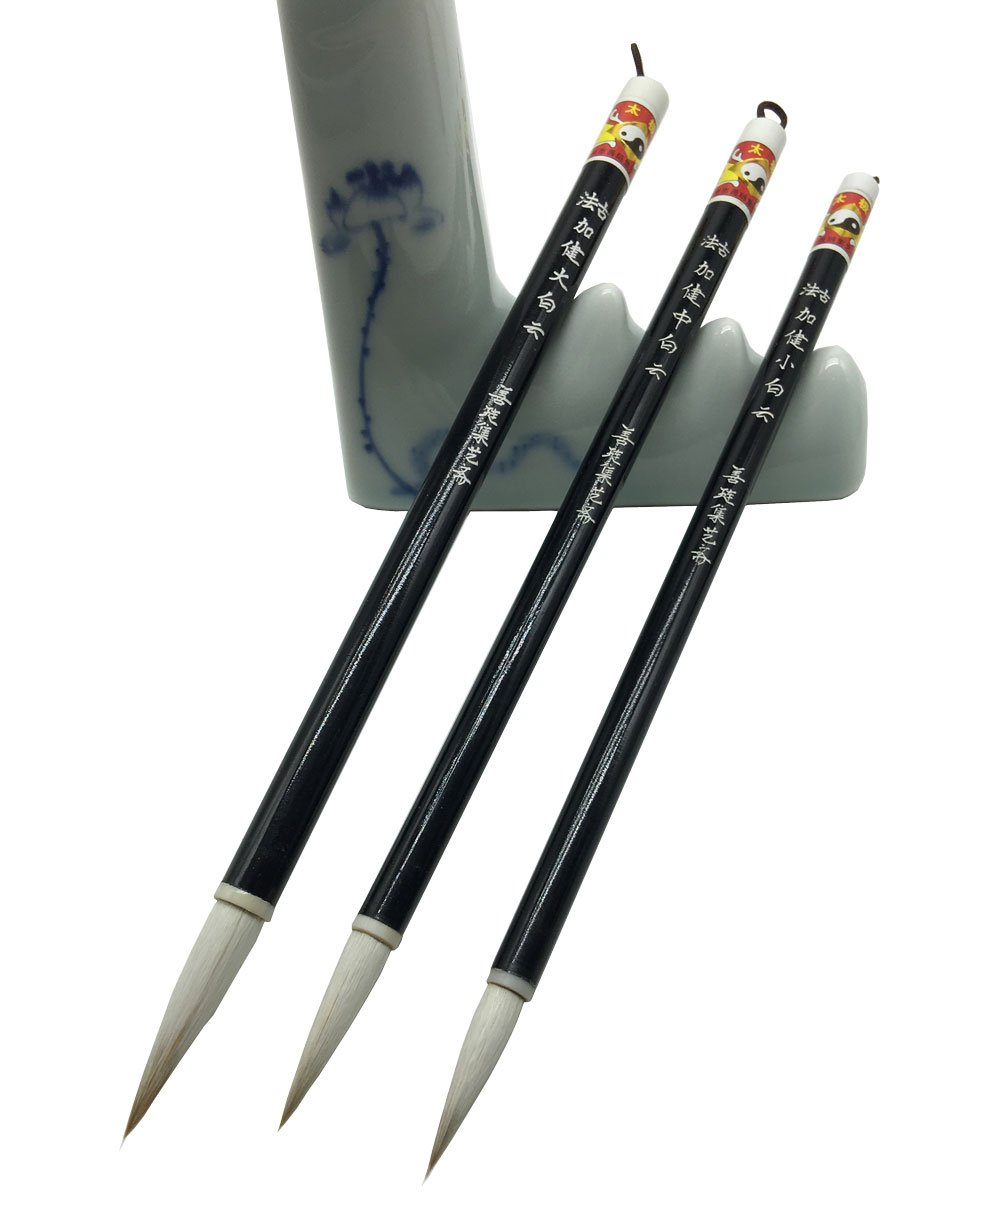 Easyou Hu Brush Chinese Brush for Coloring Painting and Practicing Calligraphy JJBY L+M+S